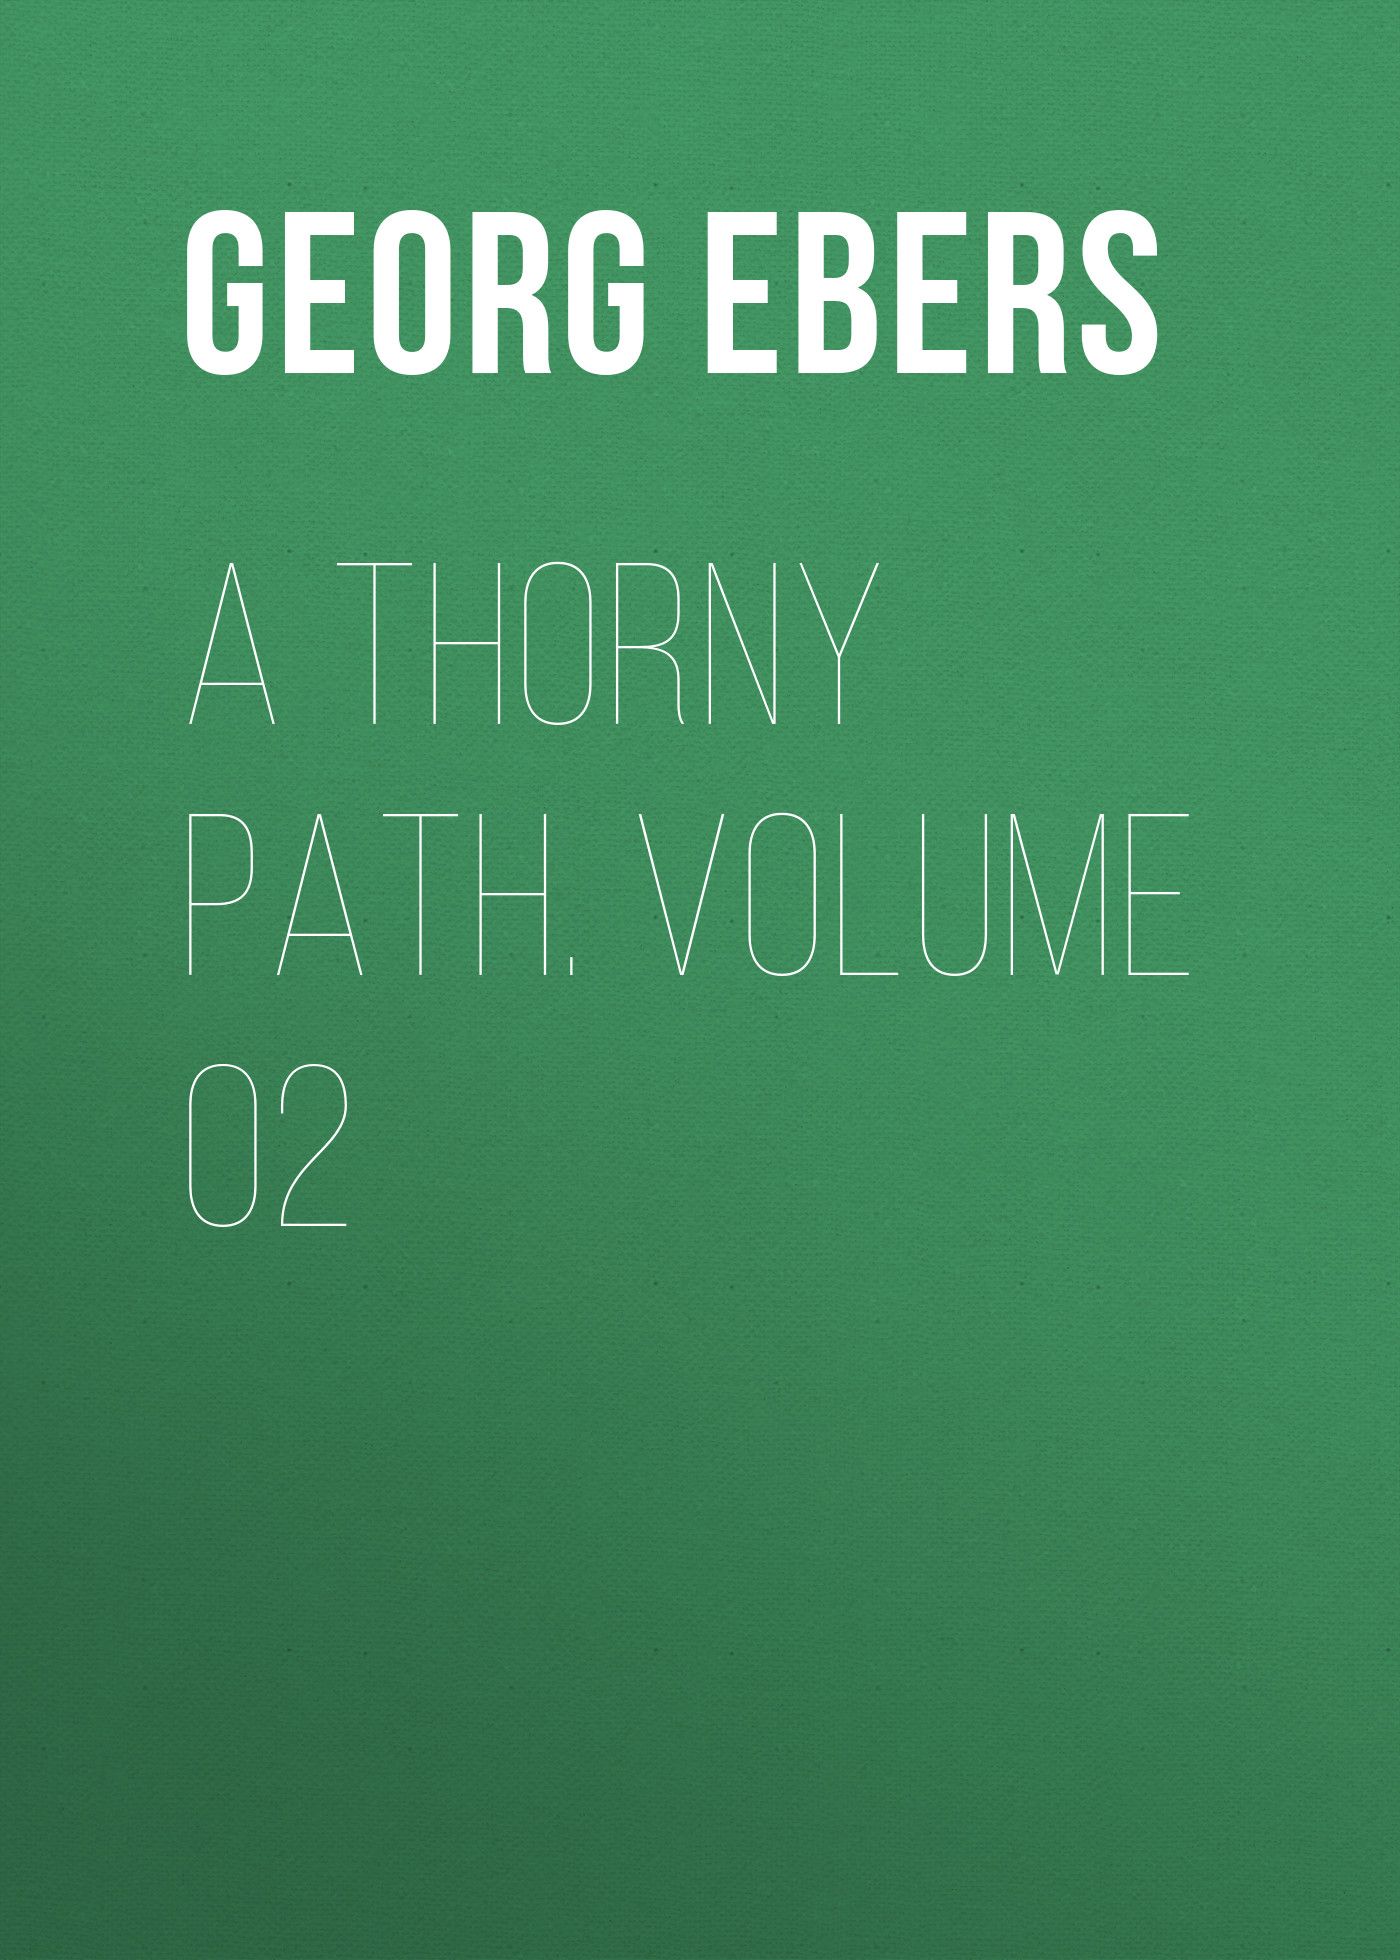 Georg Ebers A Thorny Path. Volume 02